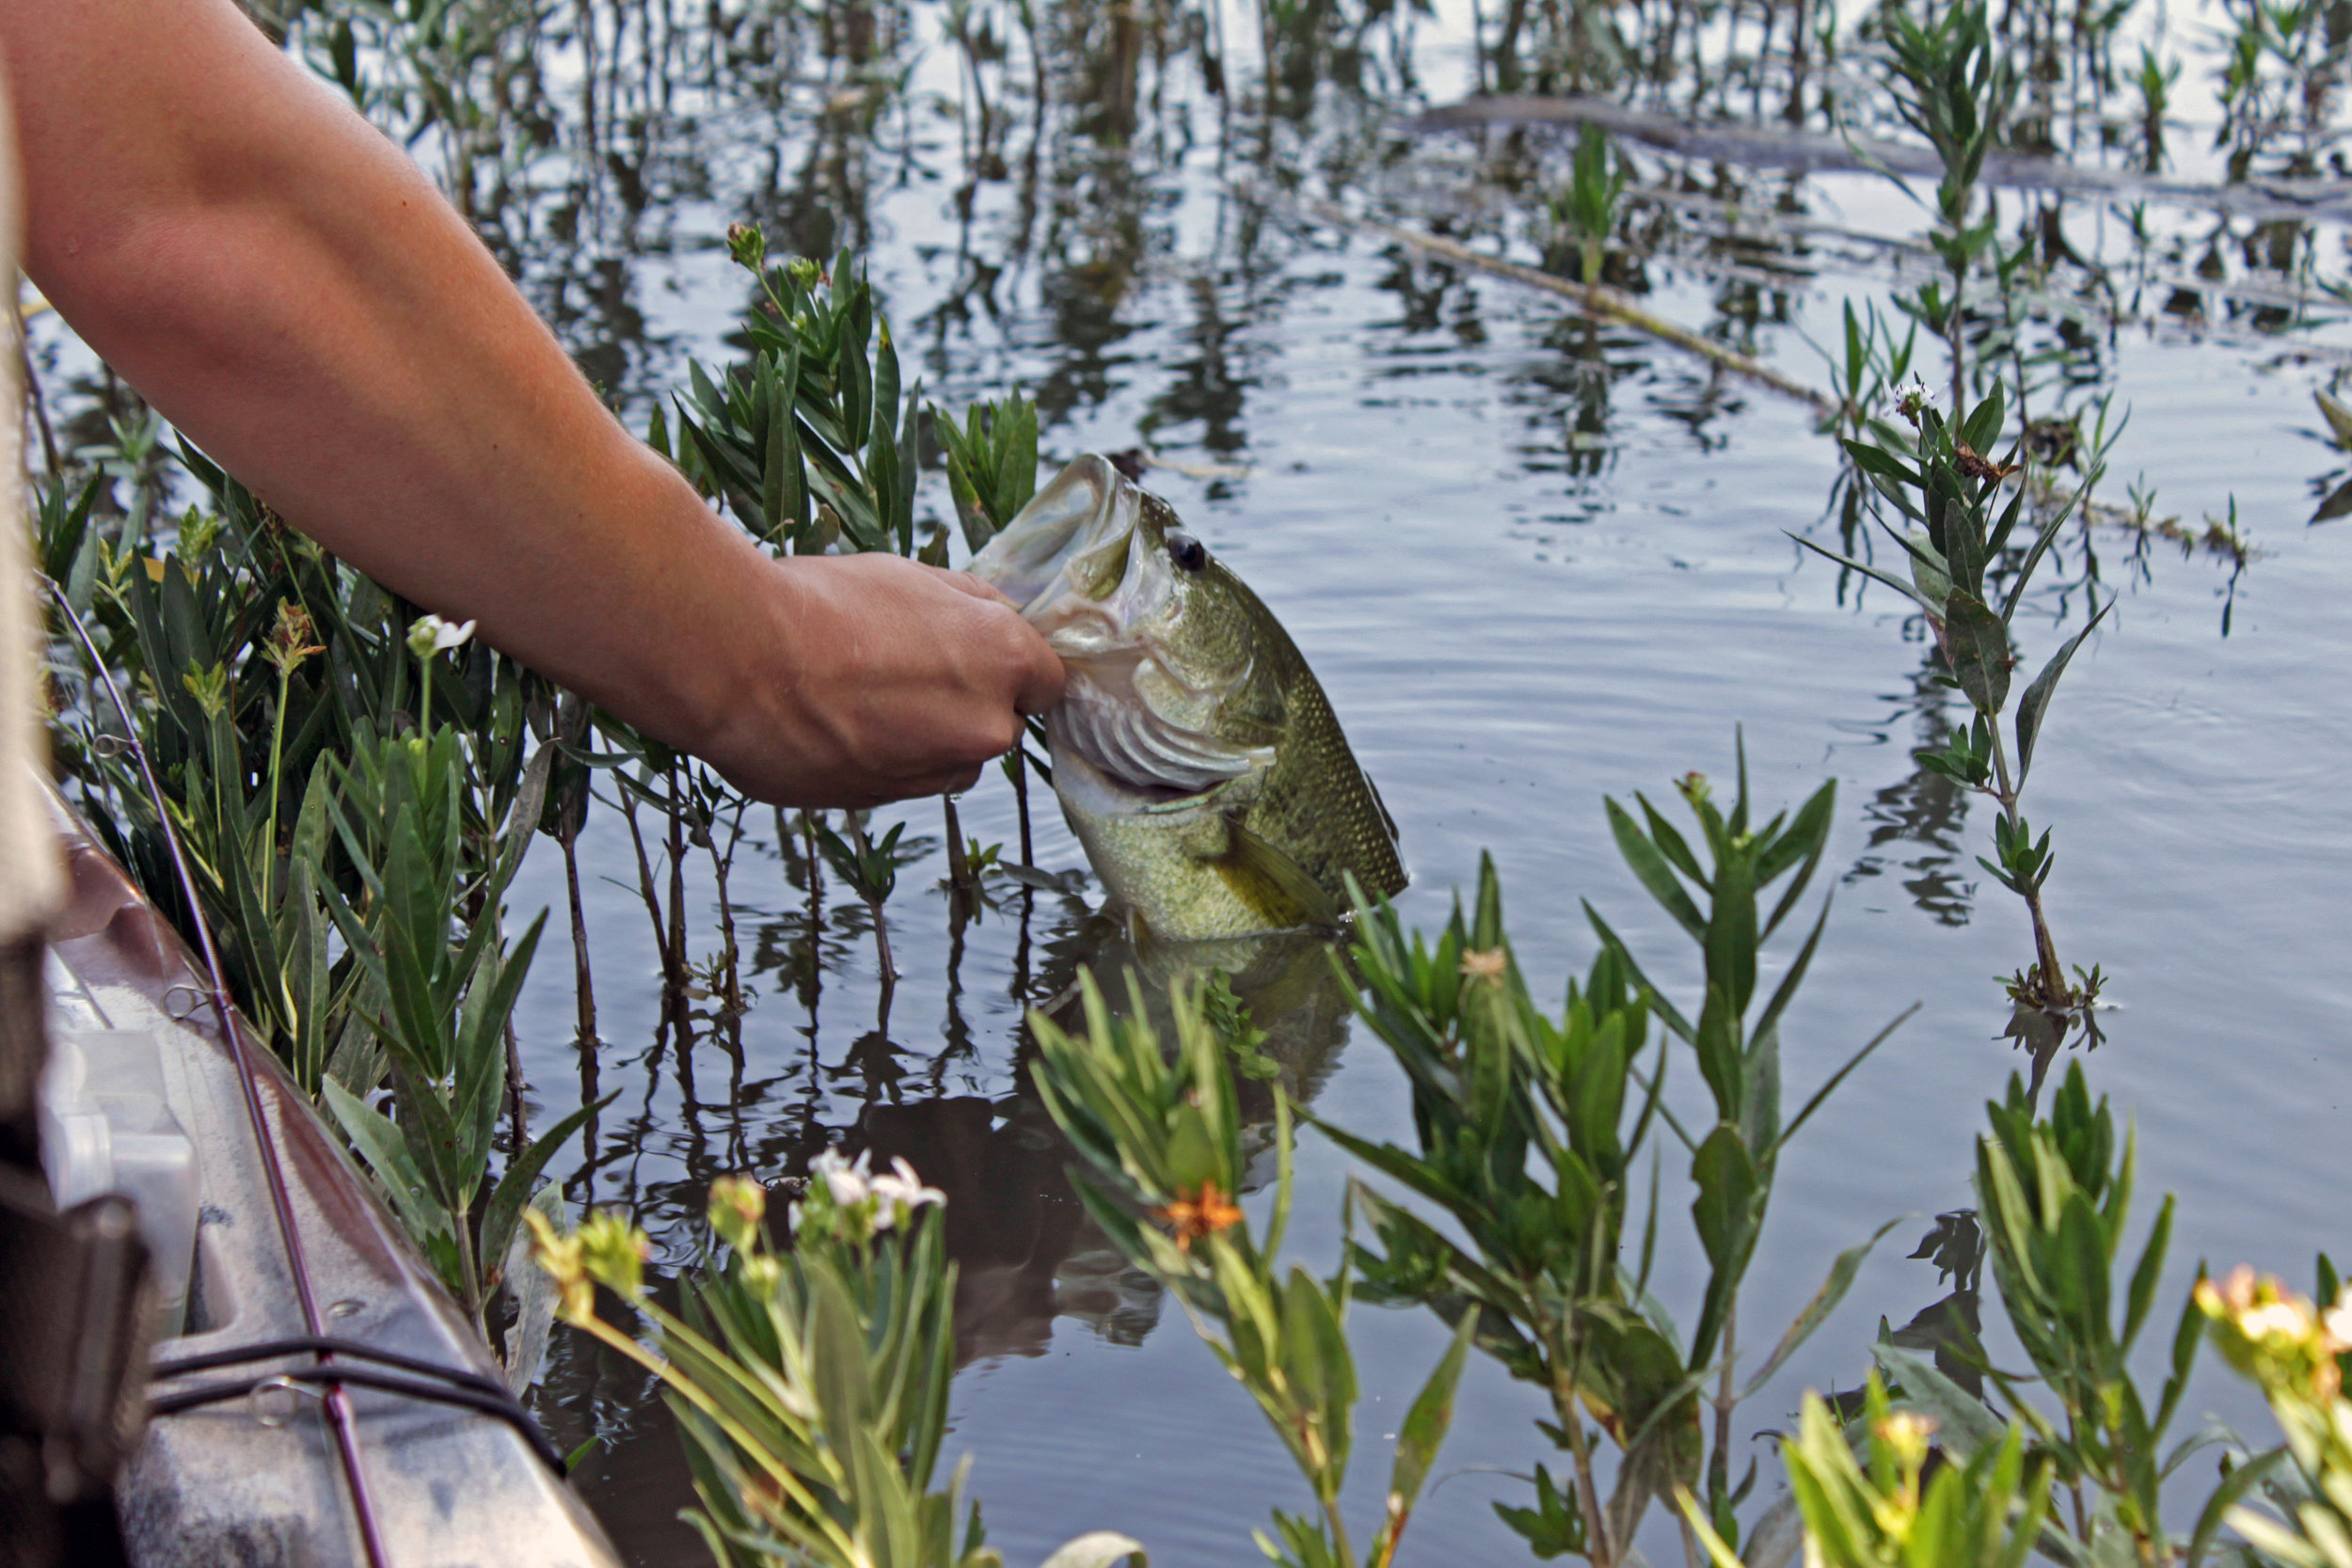 Bass Caught on South Llano River